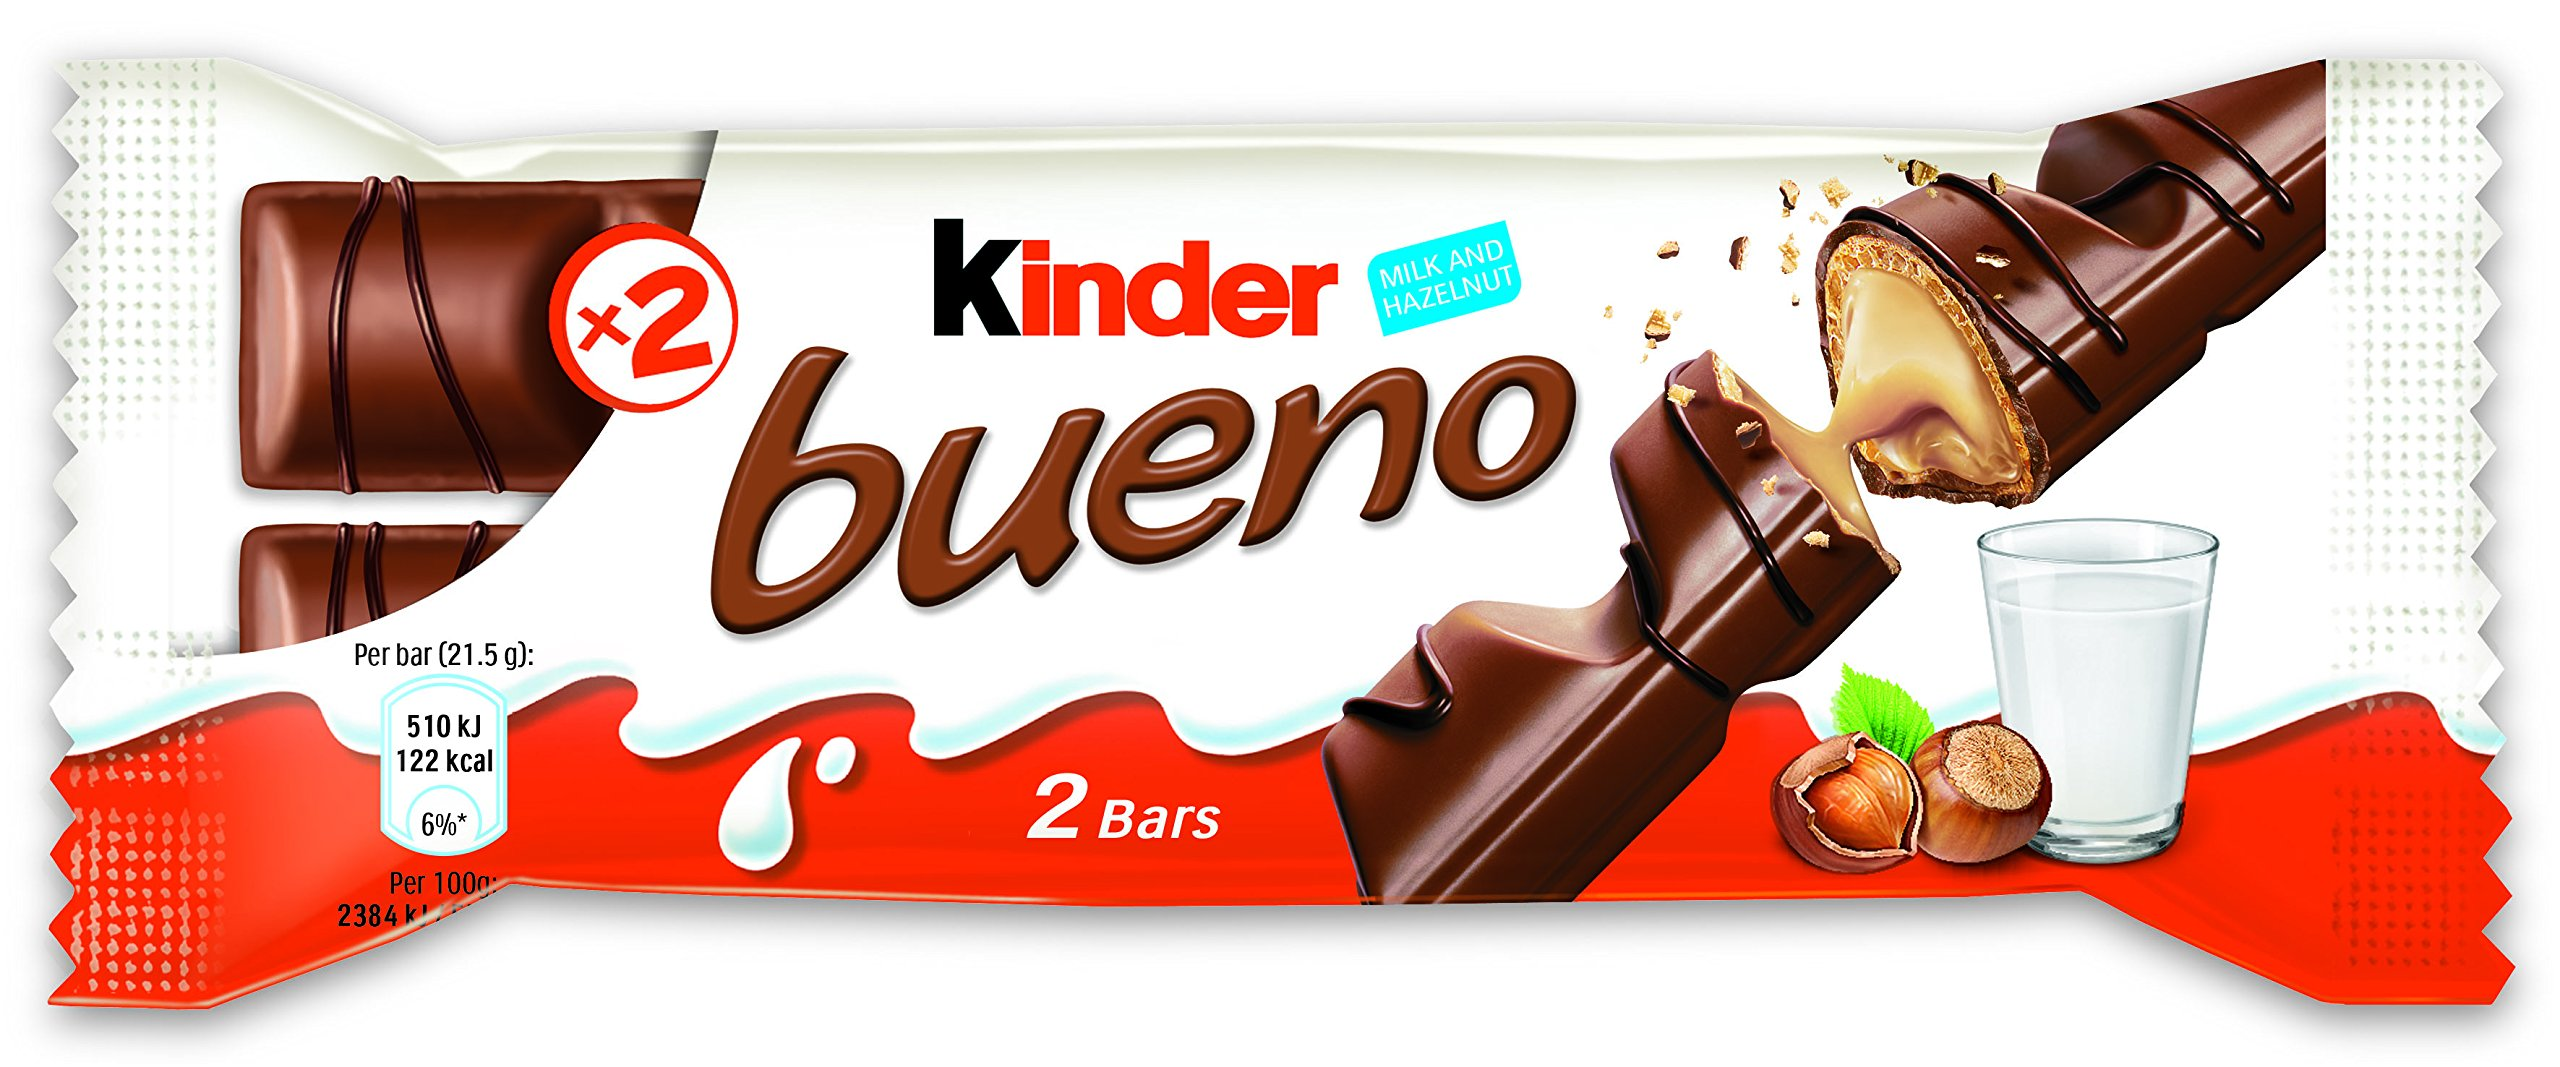 Ferrero Kinder Bueno Wafer Cookies, 1.5 Ounce (43 g) (Pack of 30) by Ferrero (Image #2)